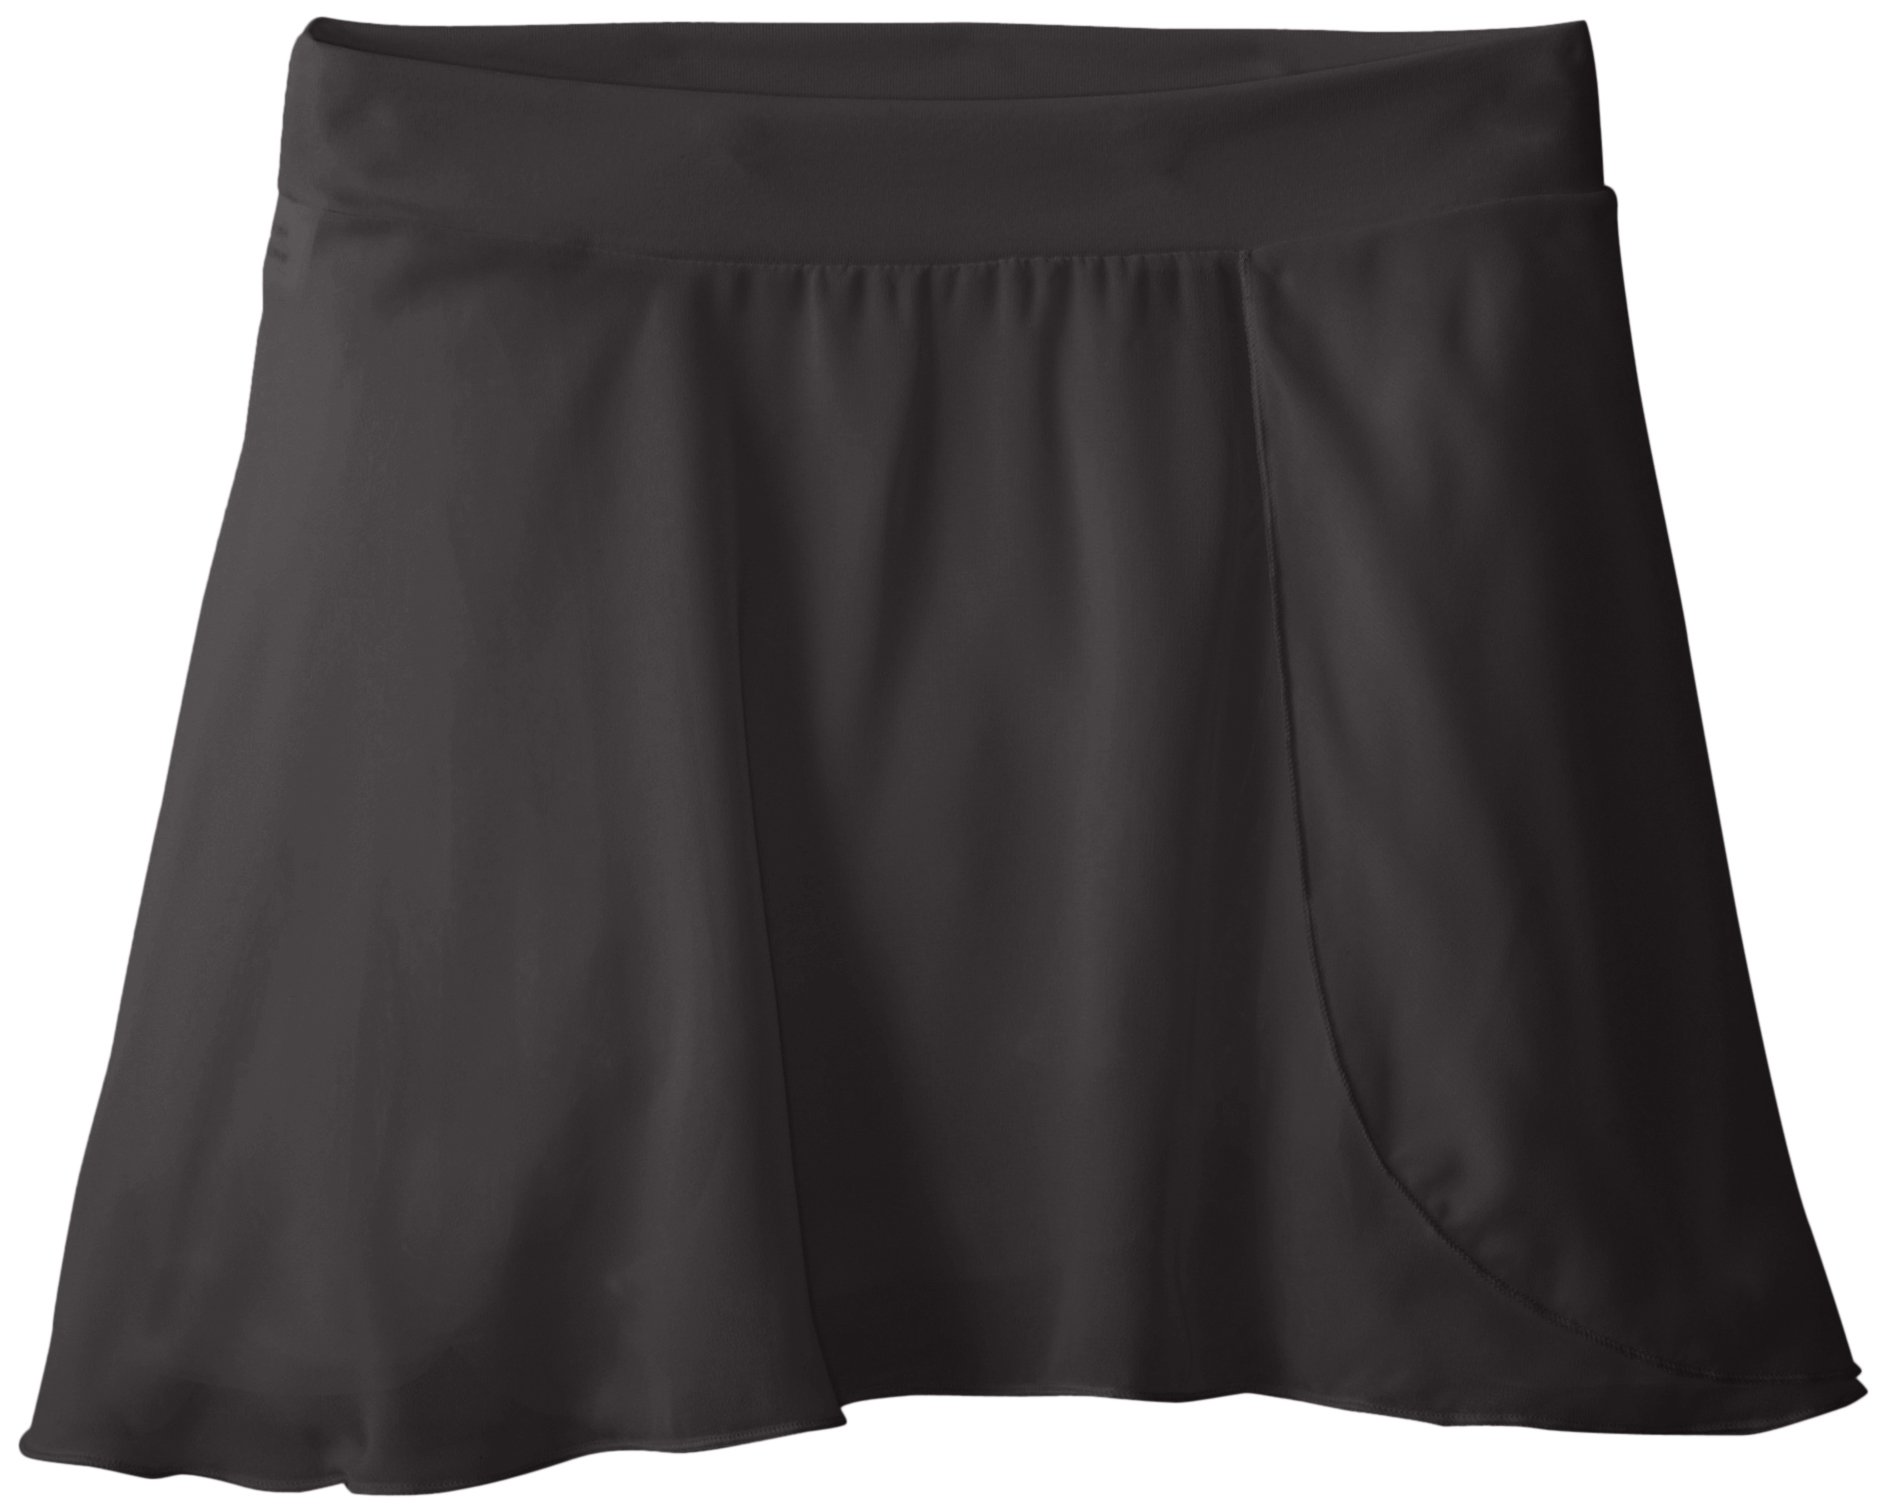 Capezio Big Girls' Tactel Collection Pull-On Skirt, Black, Large (12-14)